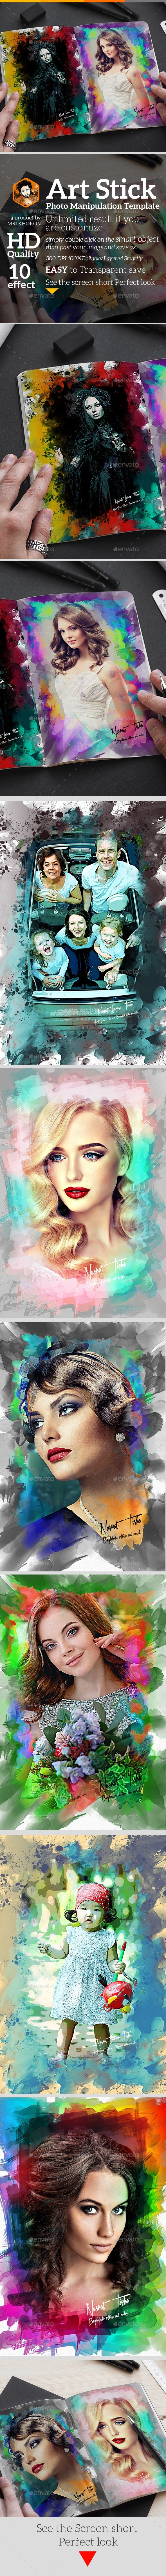 Artistic Photo Manipulation Template - Artistic Photo Templates